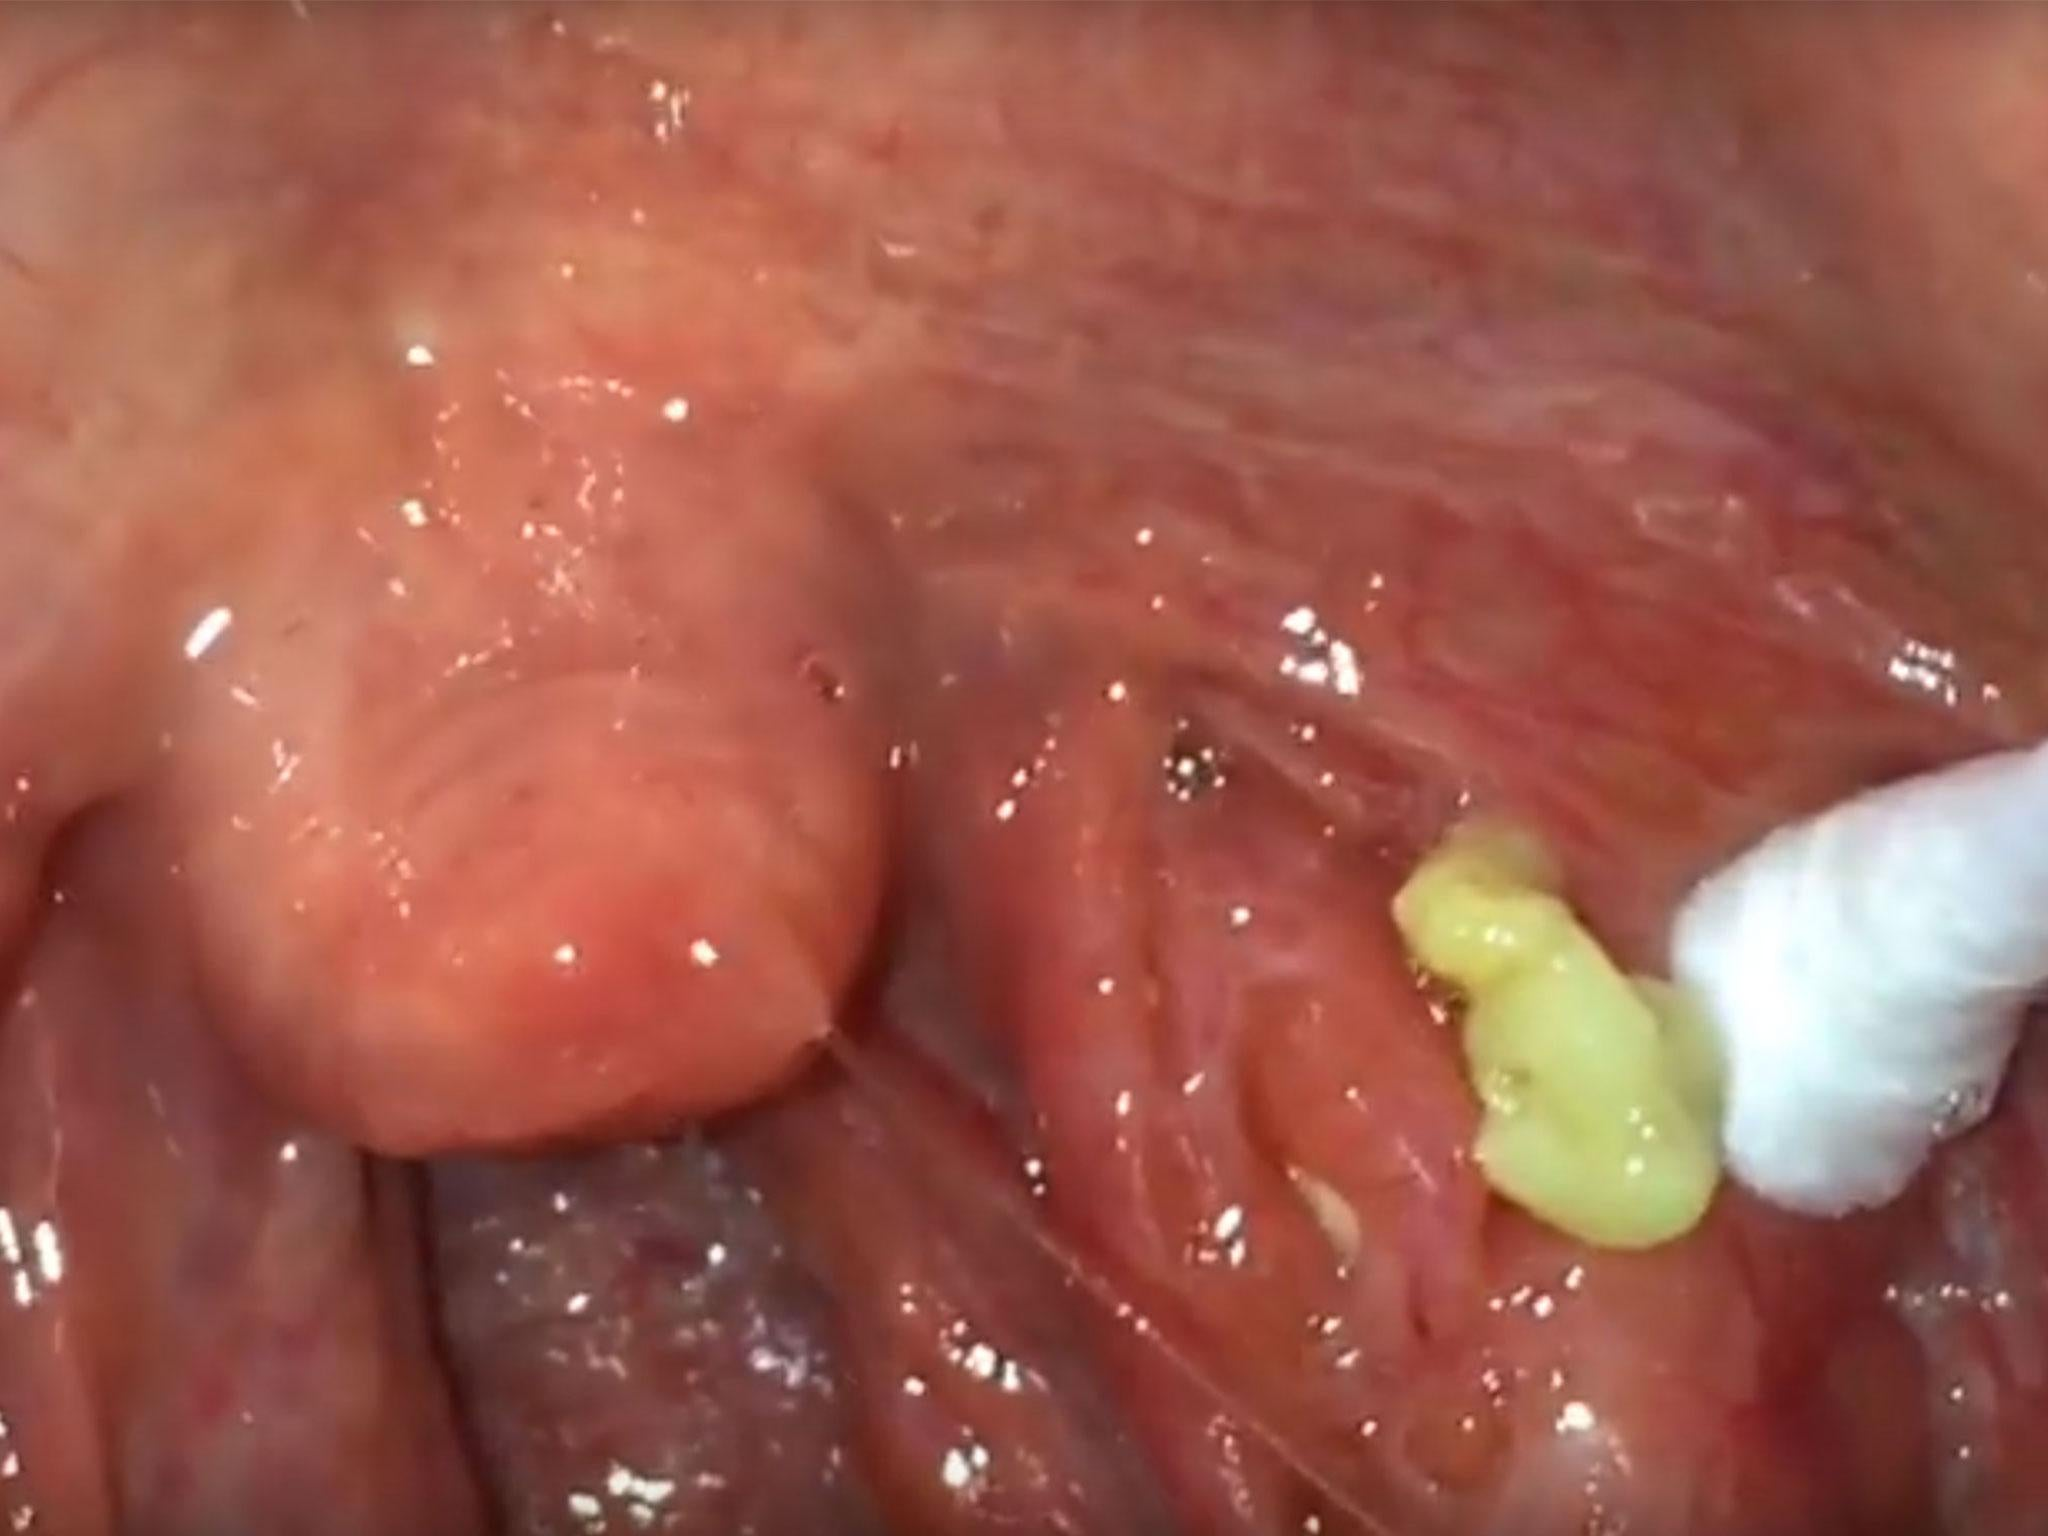 Meet the bizarre Reddit community obsessed with digging out tonsil